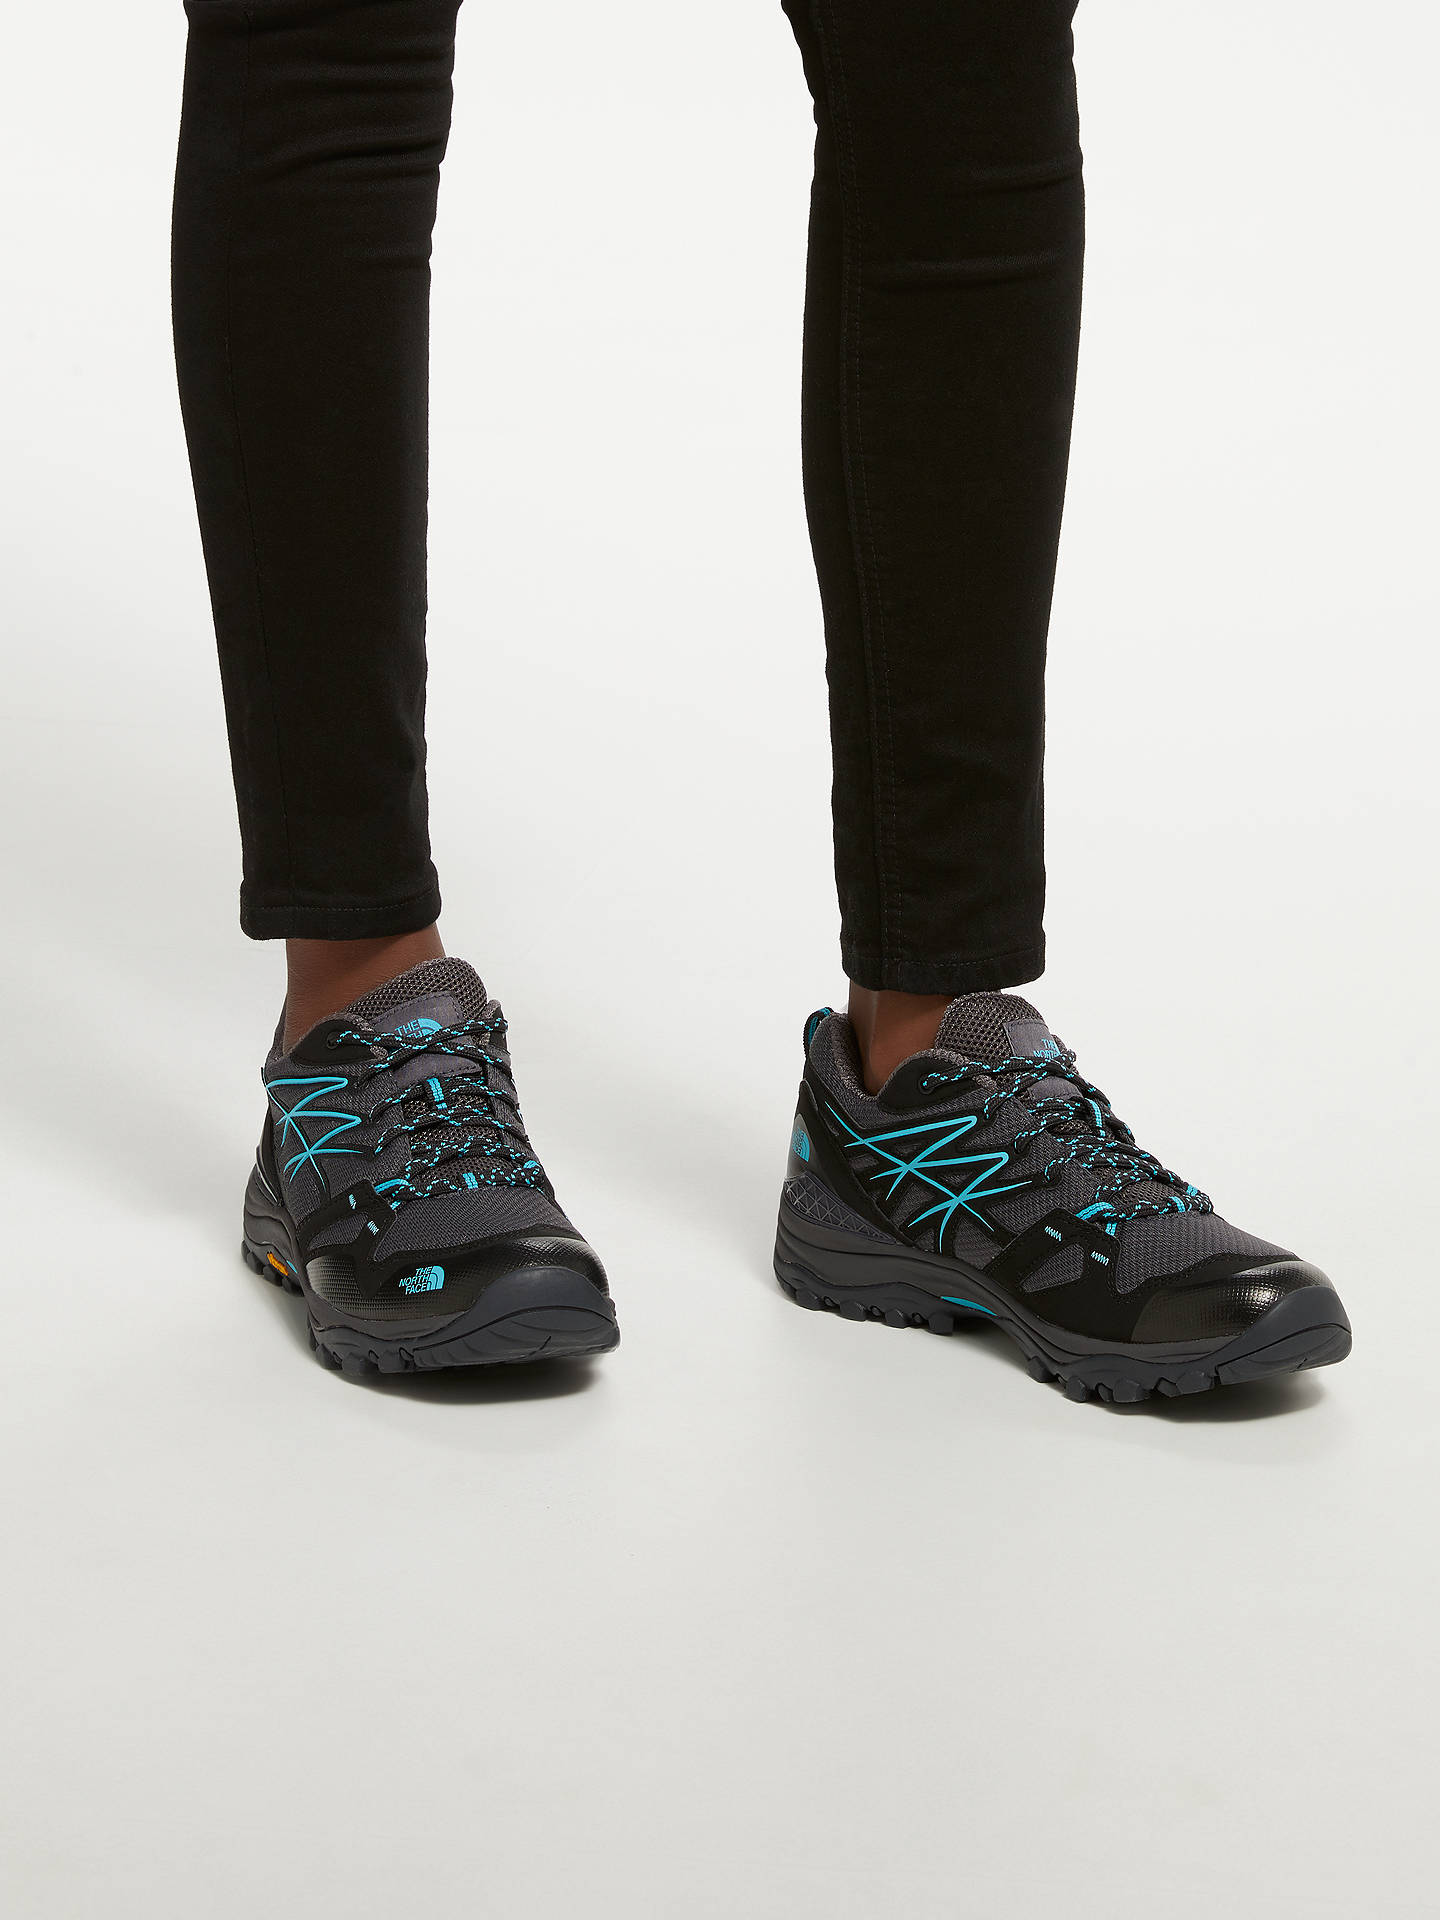 Buy The North Face Hedgehog Fastpack GORE-TEX Waterproof Women's Hiking Shoes, Blackened Pearl, 7 Online at johnlewis.com